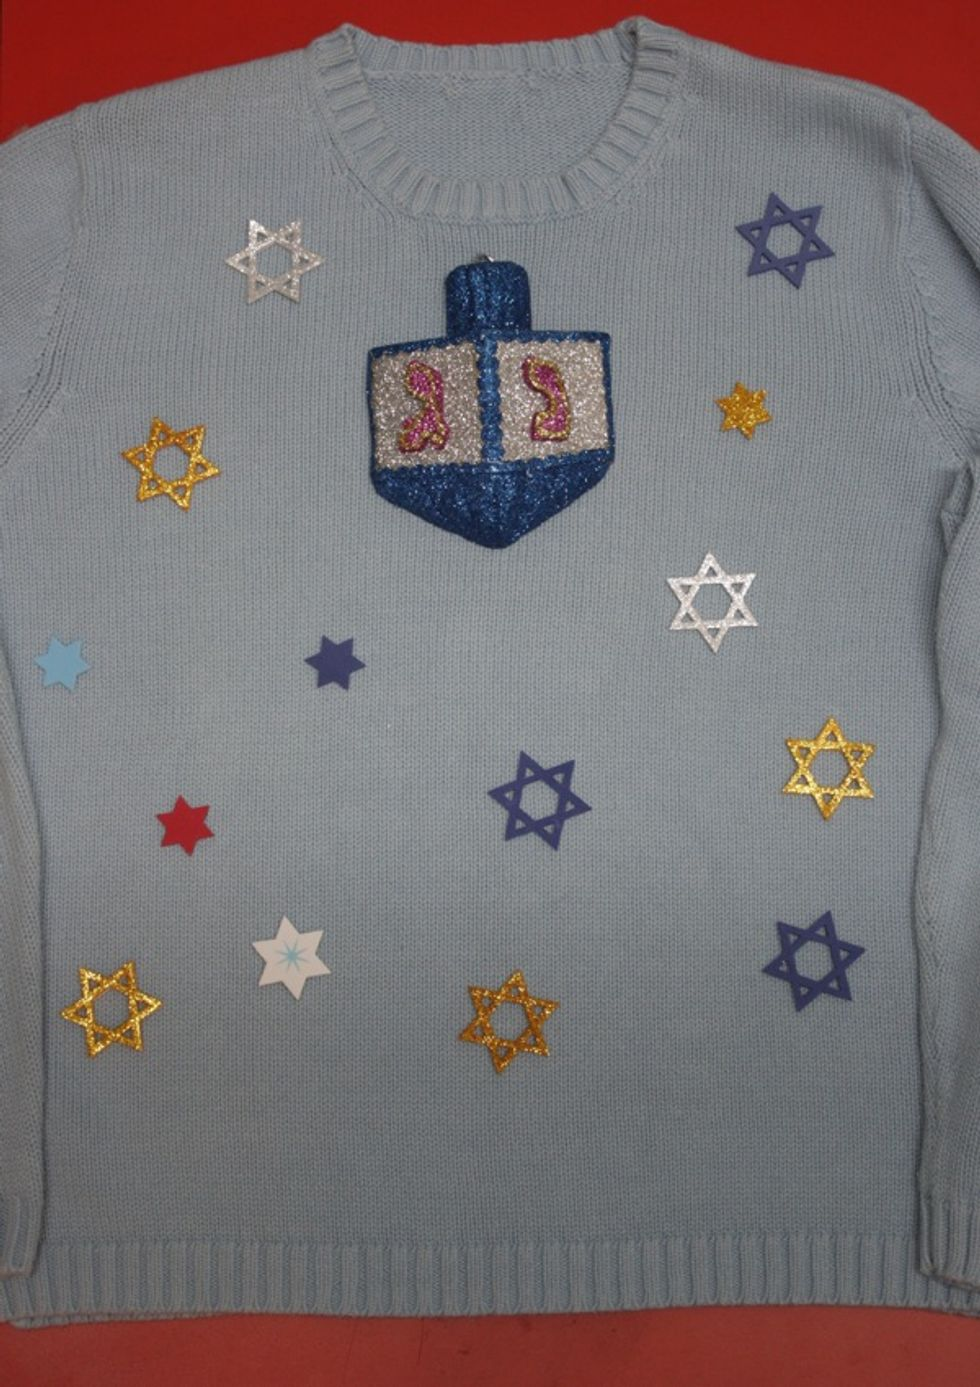 Screaming Mimi's Is Now Selling Ugly Hanukkah Sweaters